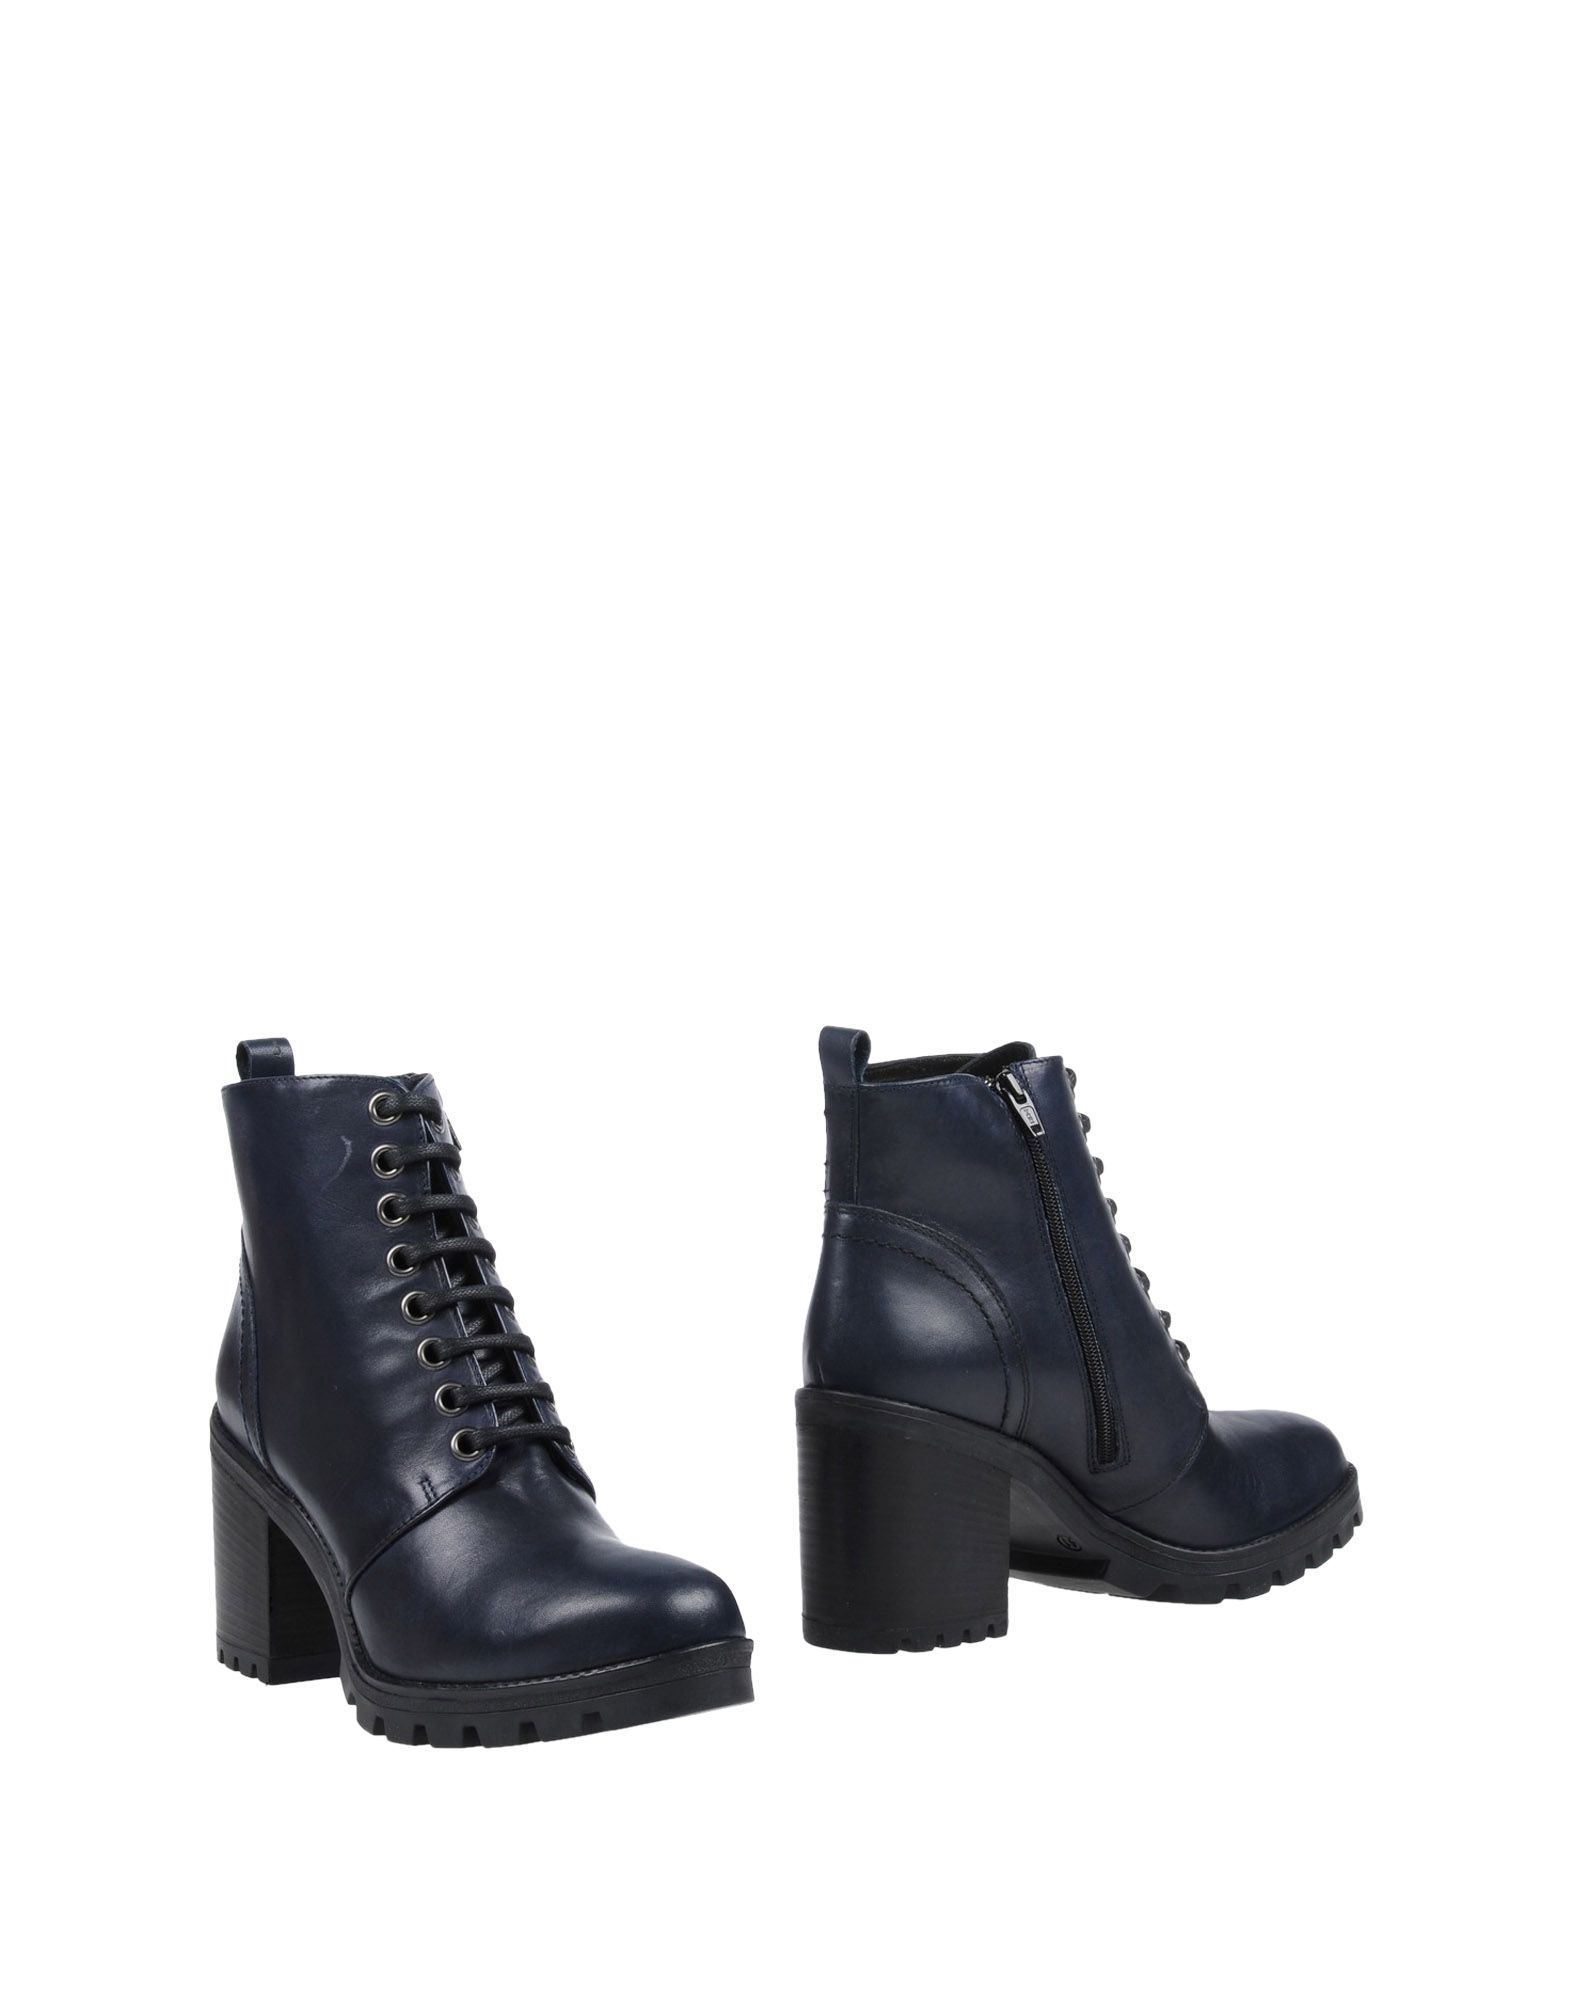 Bottine Manufacture Dessai Femme - Bottines Manufacture Dessai sur